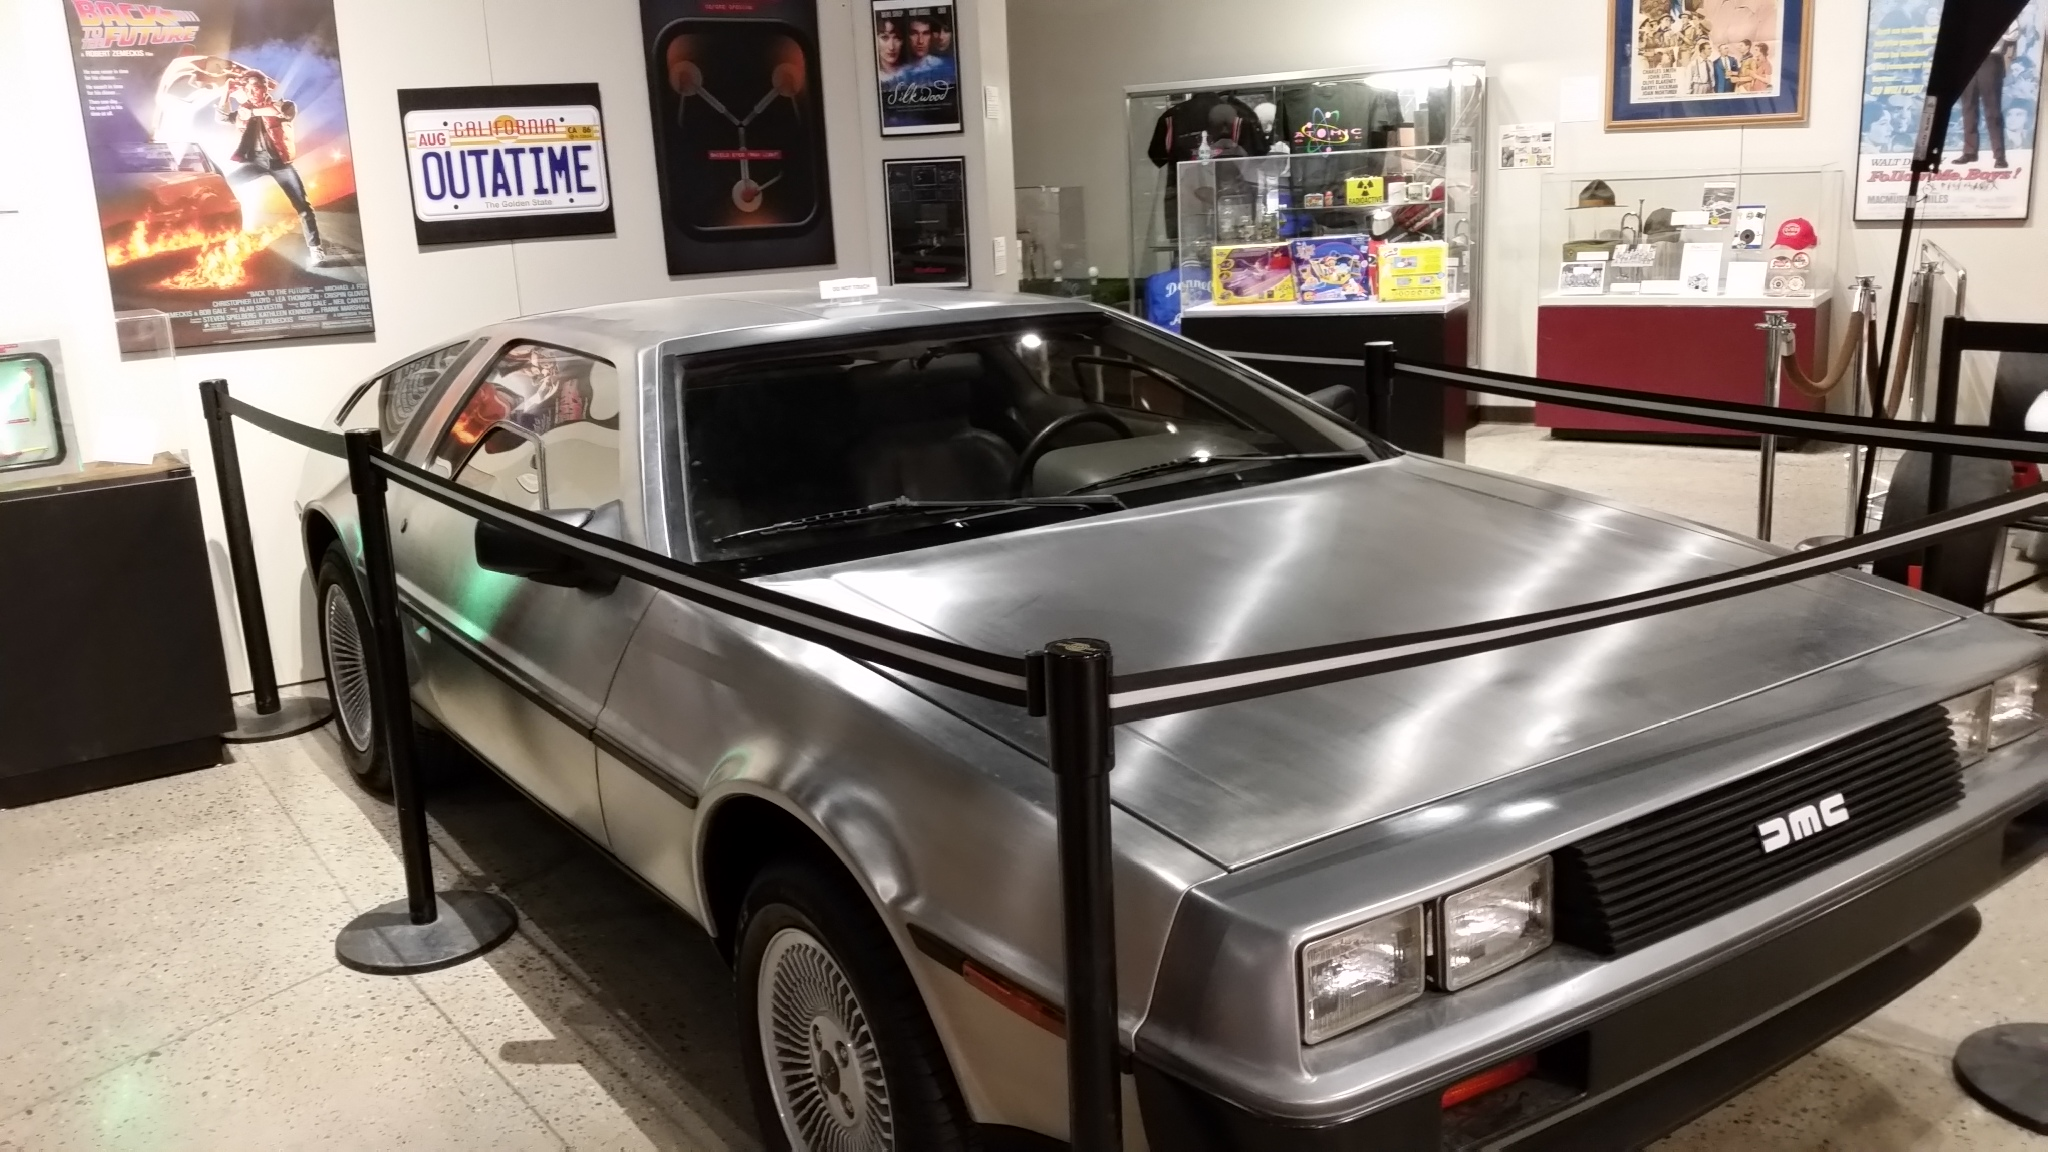 2017-11-28 DeLorean Albuquerque NM